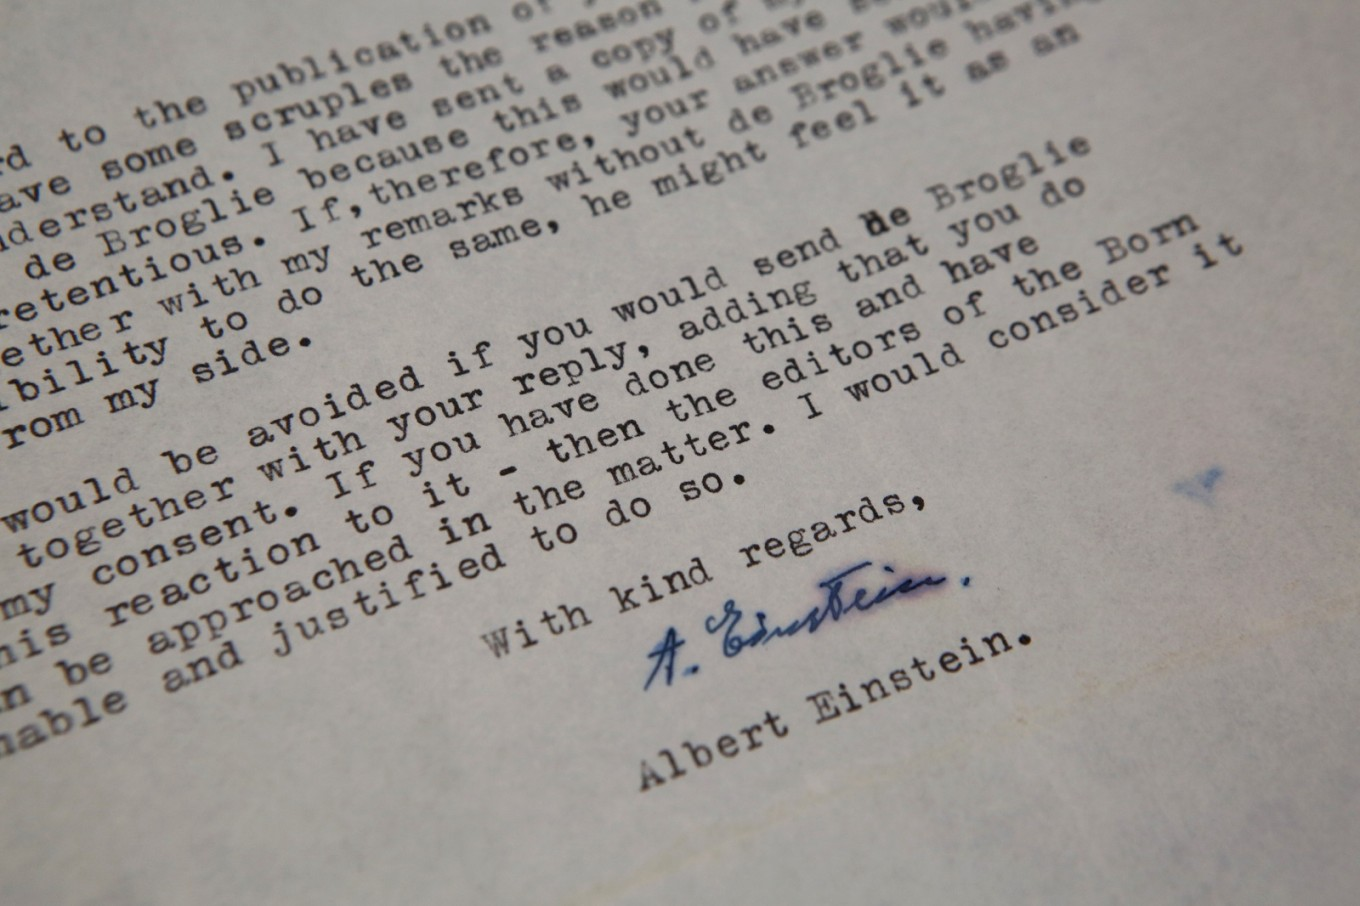 Einstein letter doubting God auctioned for $2.89 million